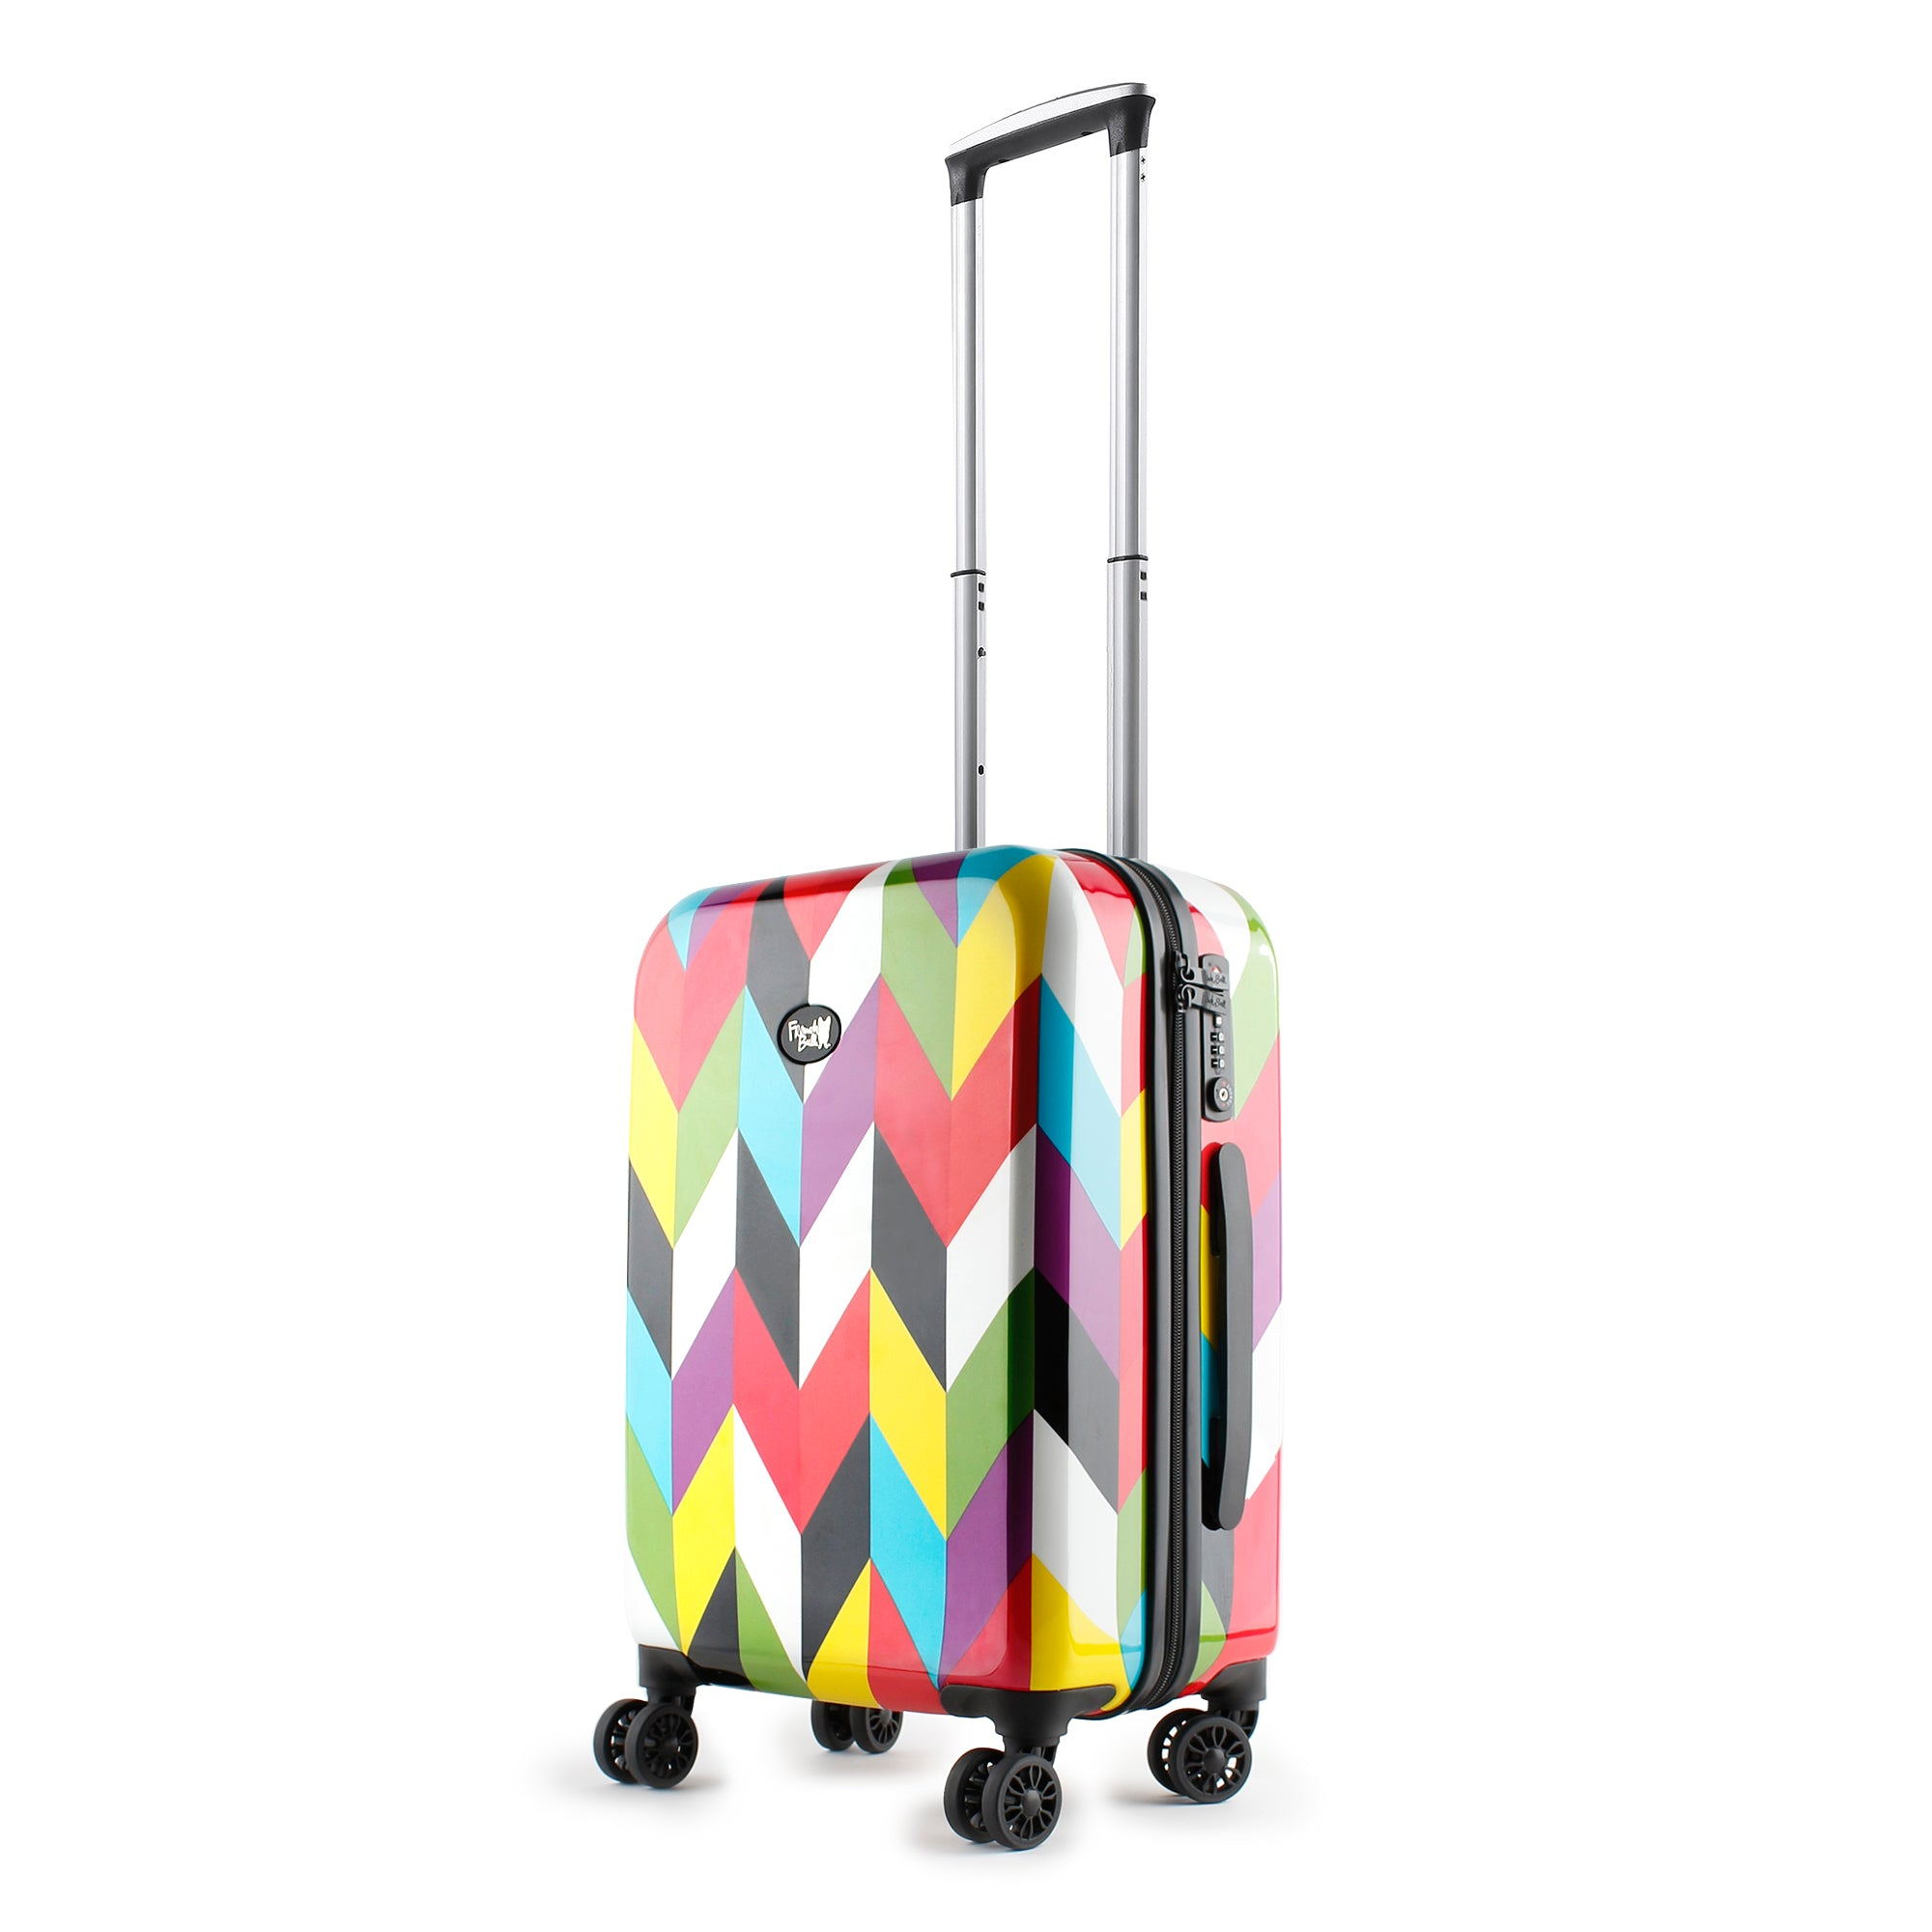 913dff3936 Ziggy Carry-On Roller Luggage